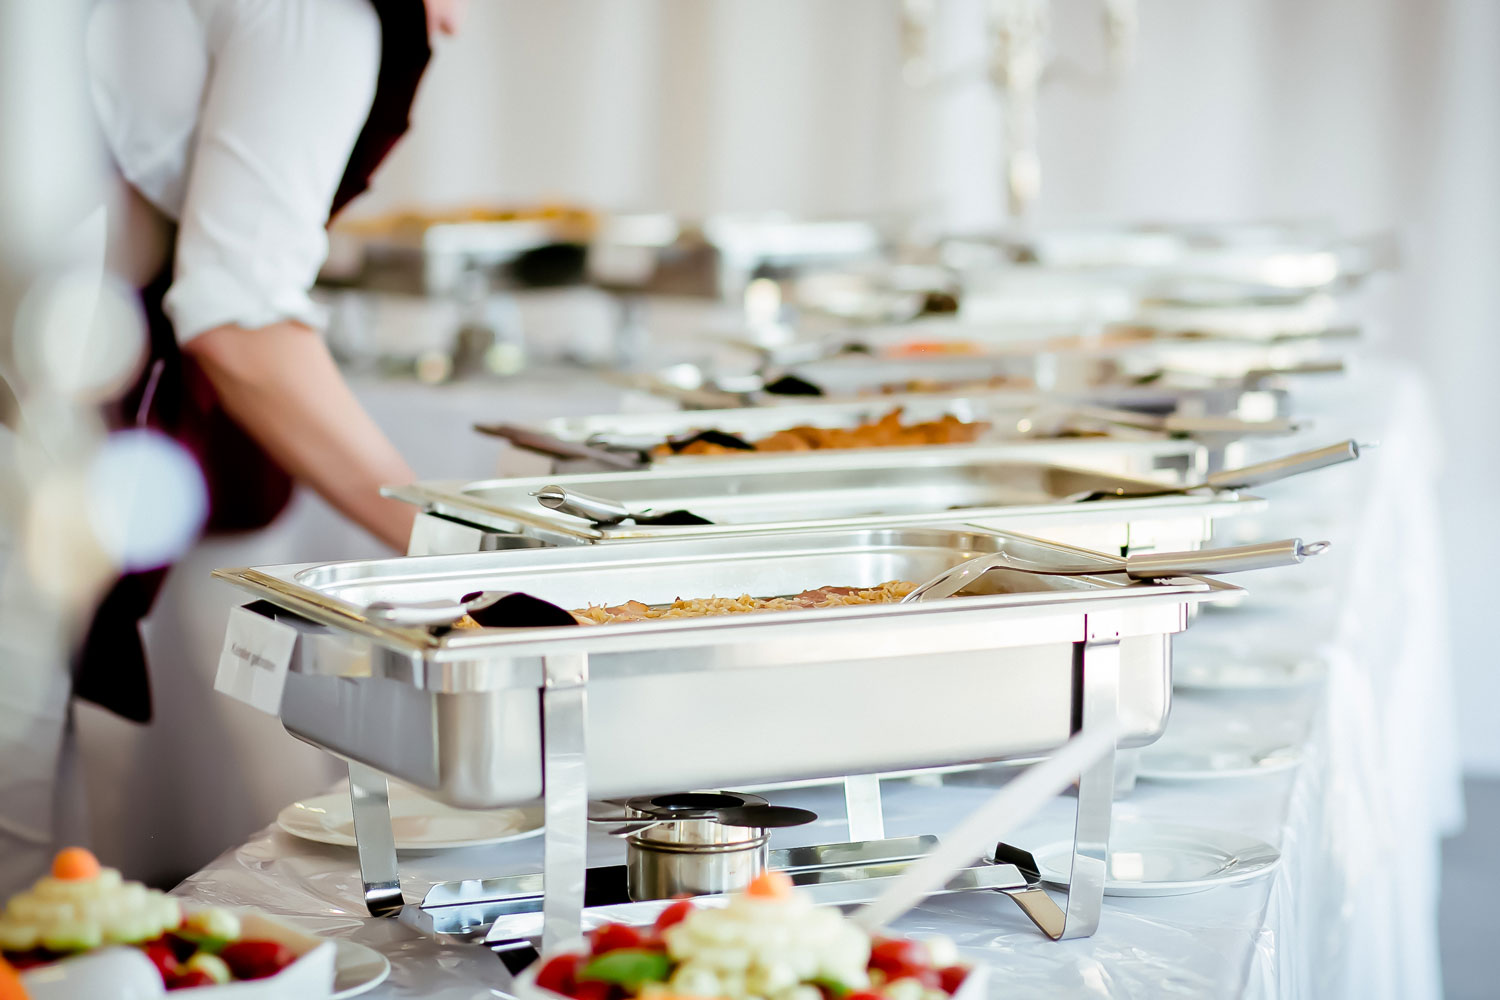 Five silver chafing dishes lined up with a server preparing to serve food.